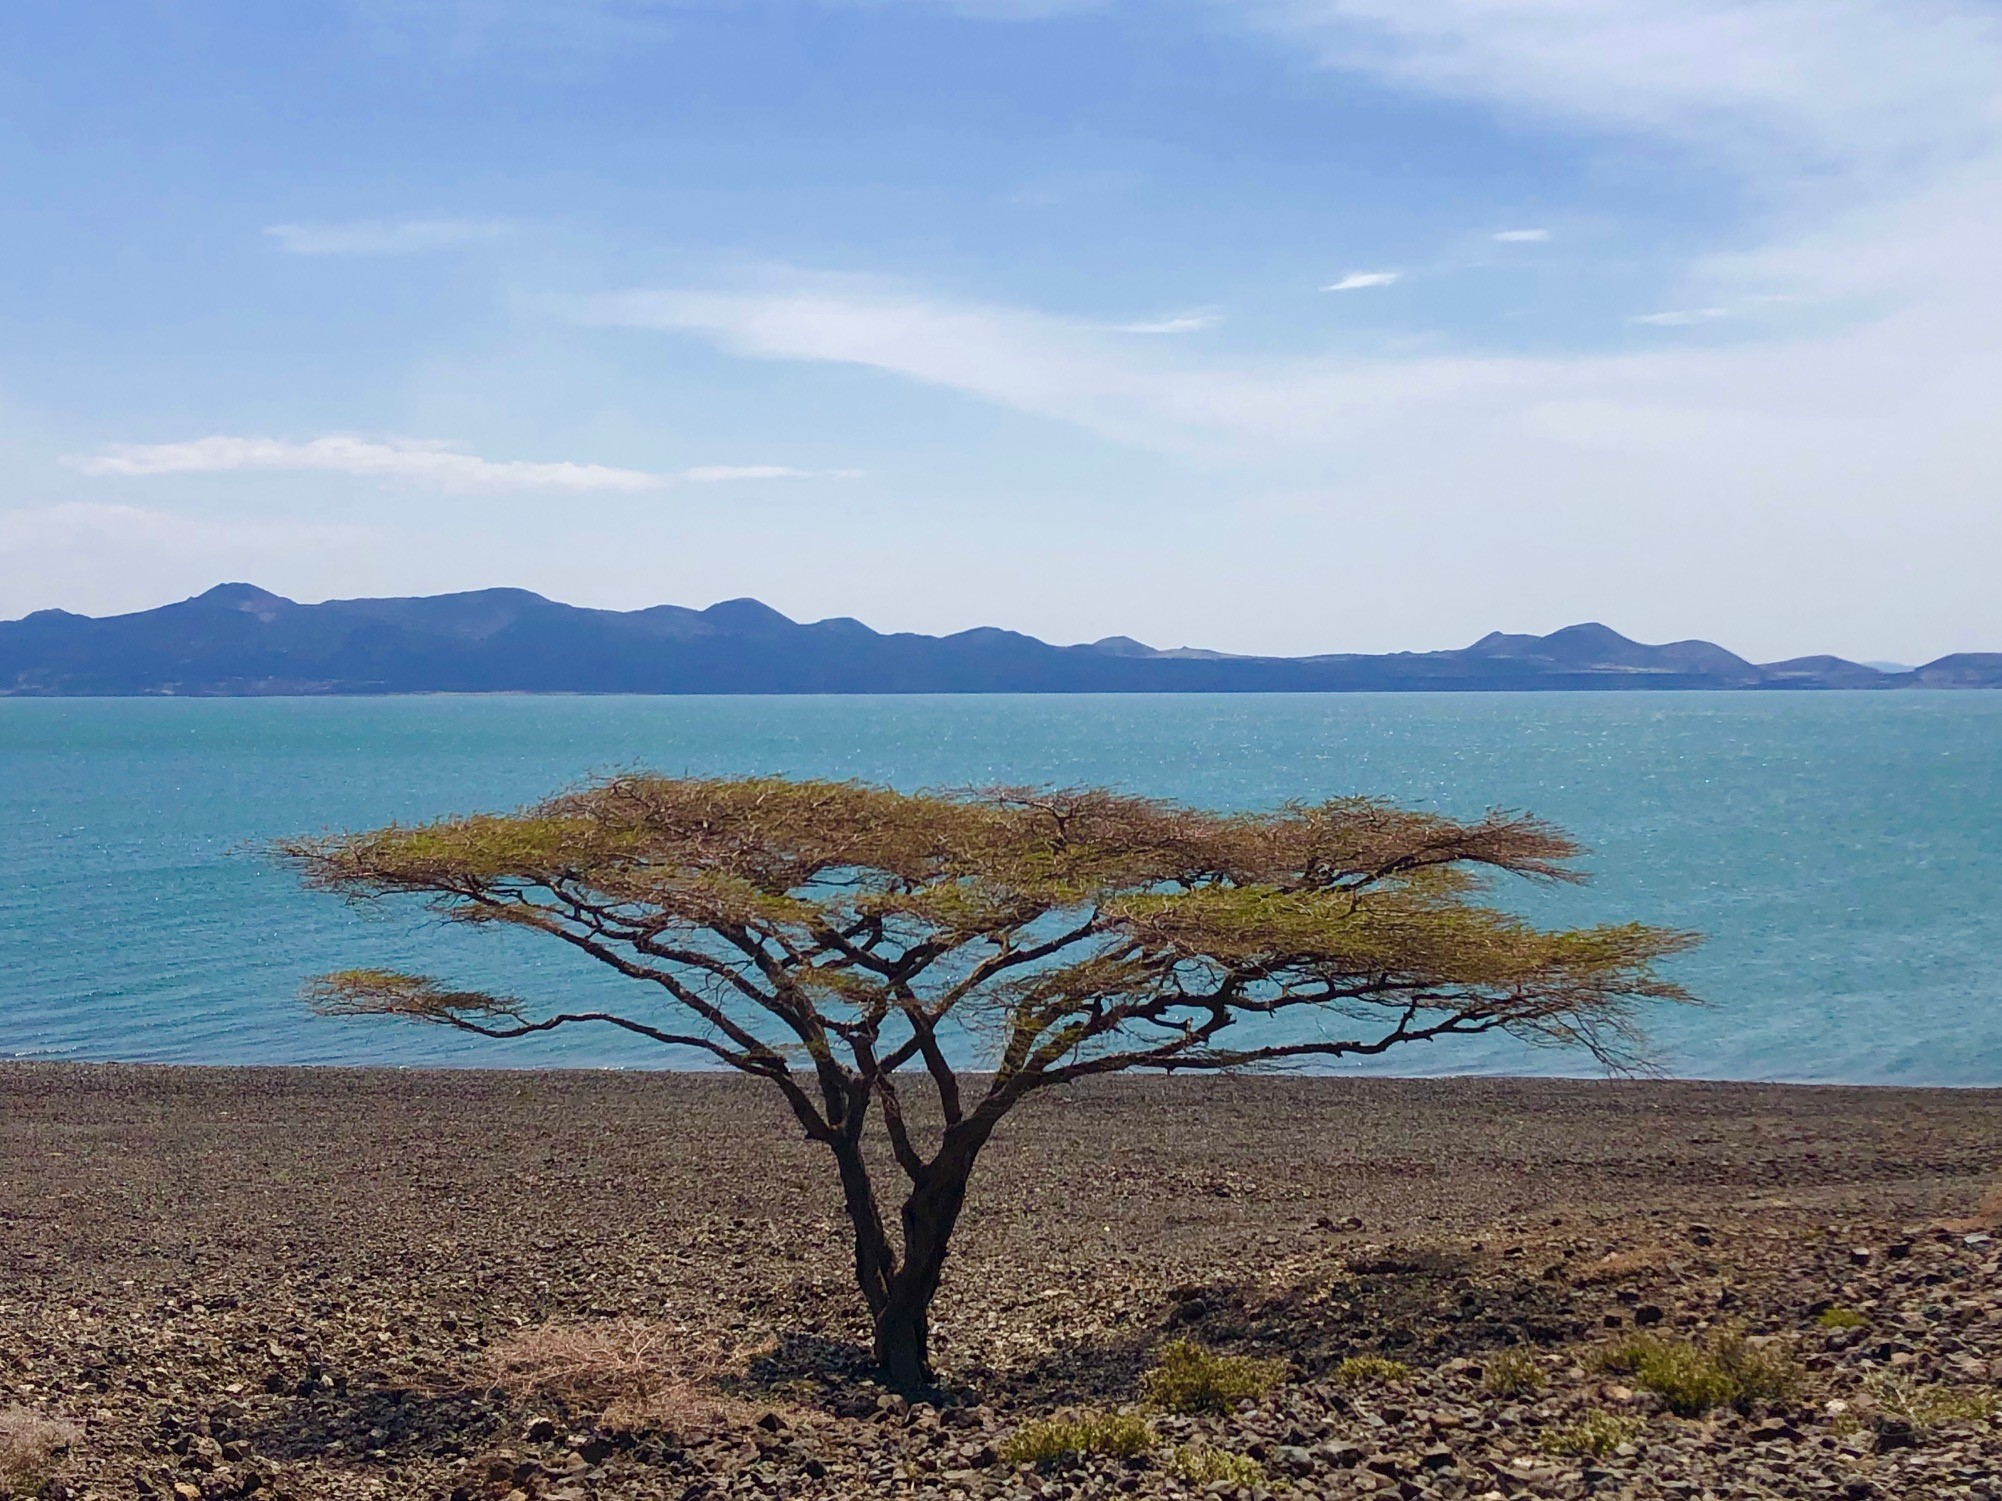 First sight of Lake Turkana